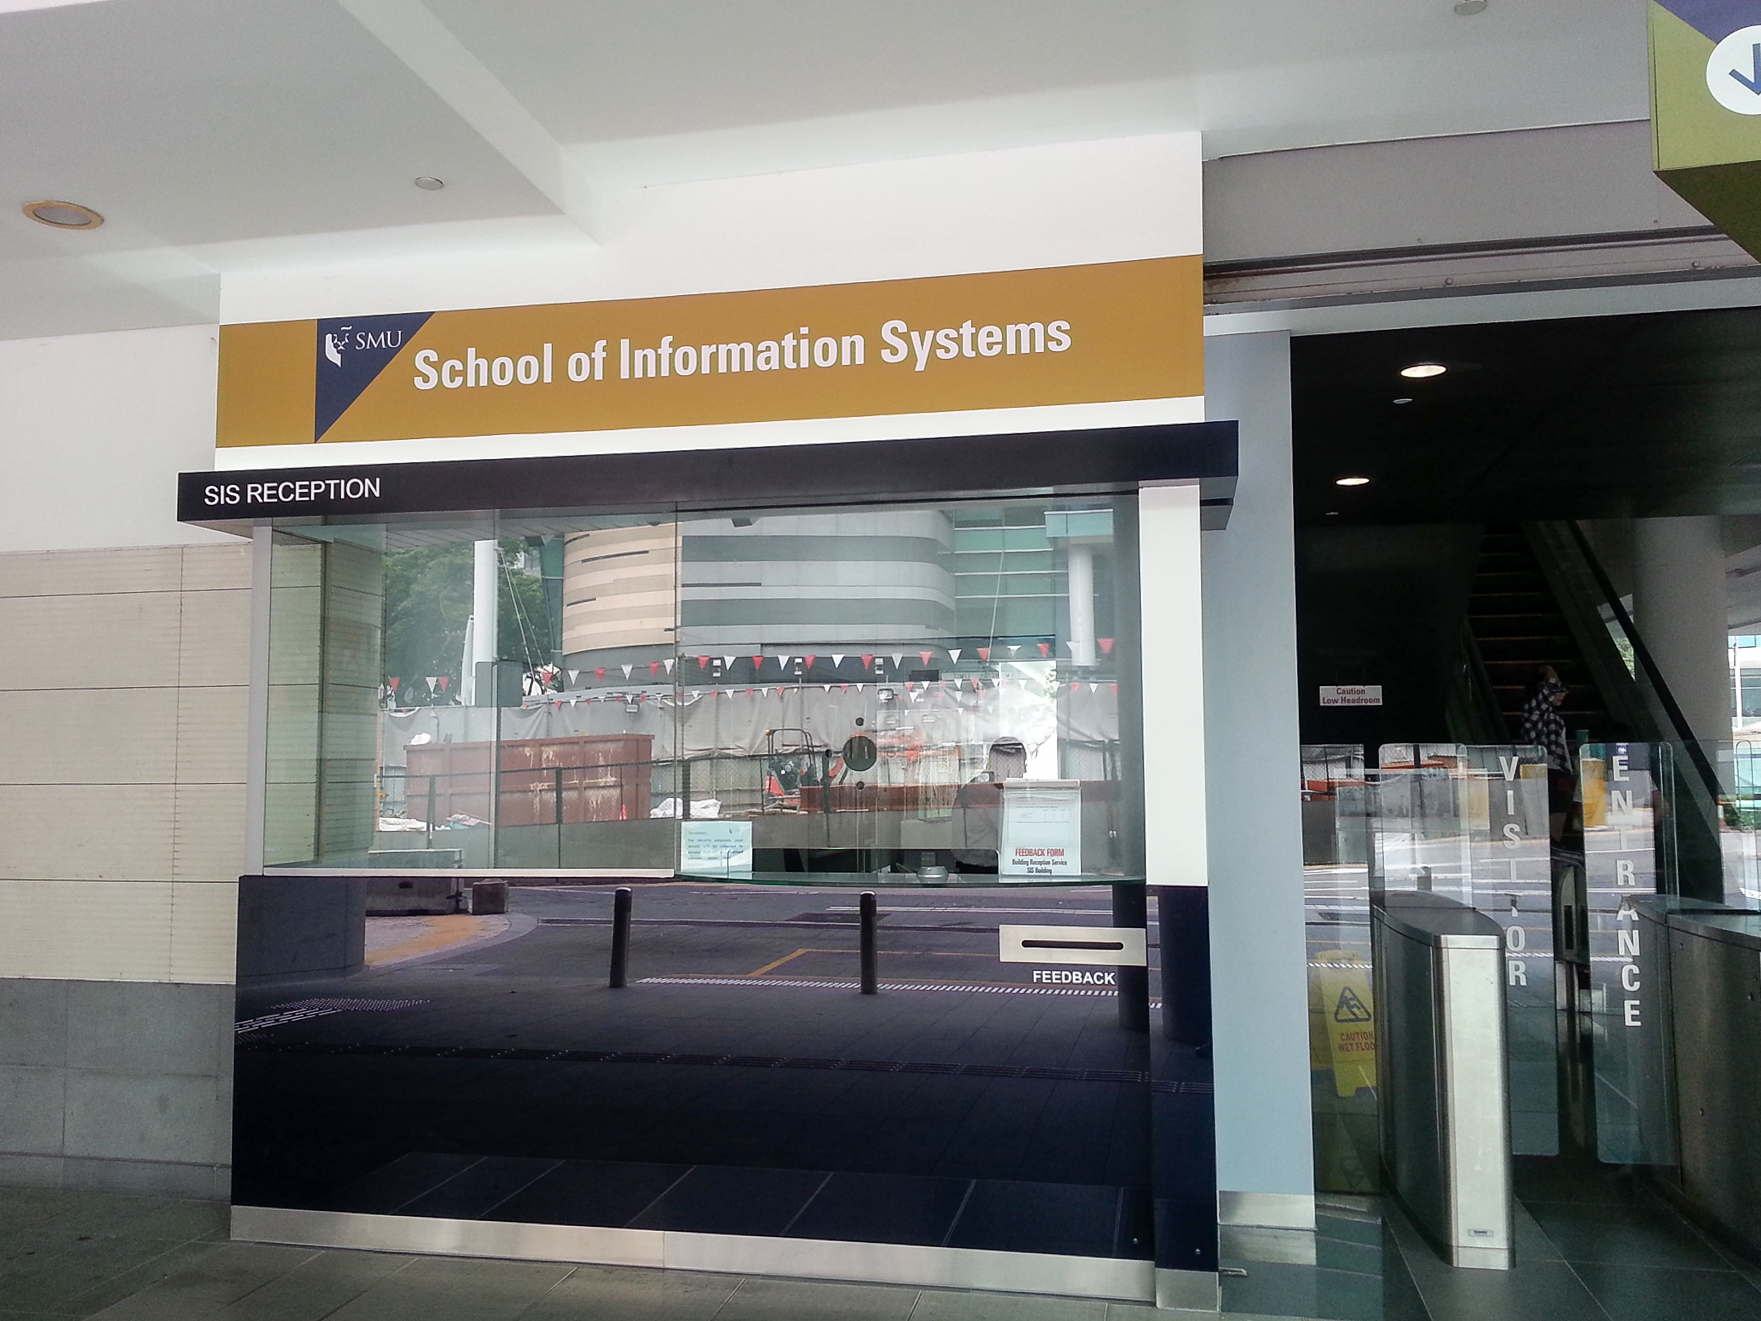 School of Information Systems - SIS RECEPTION